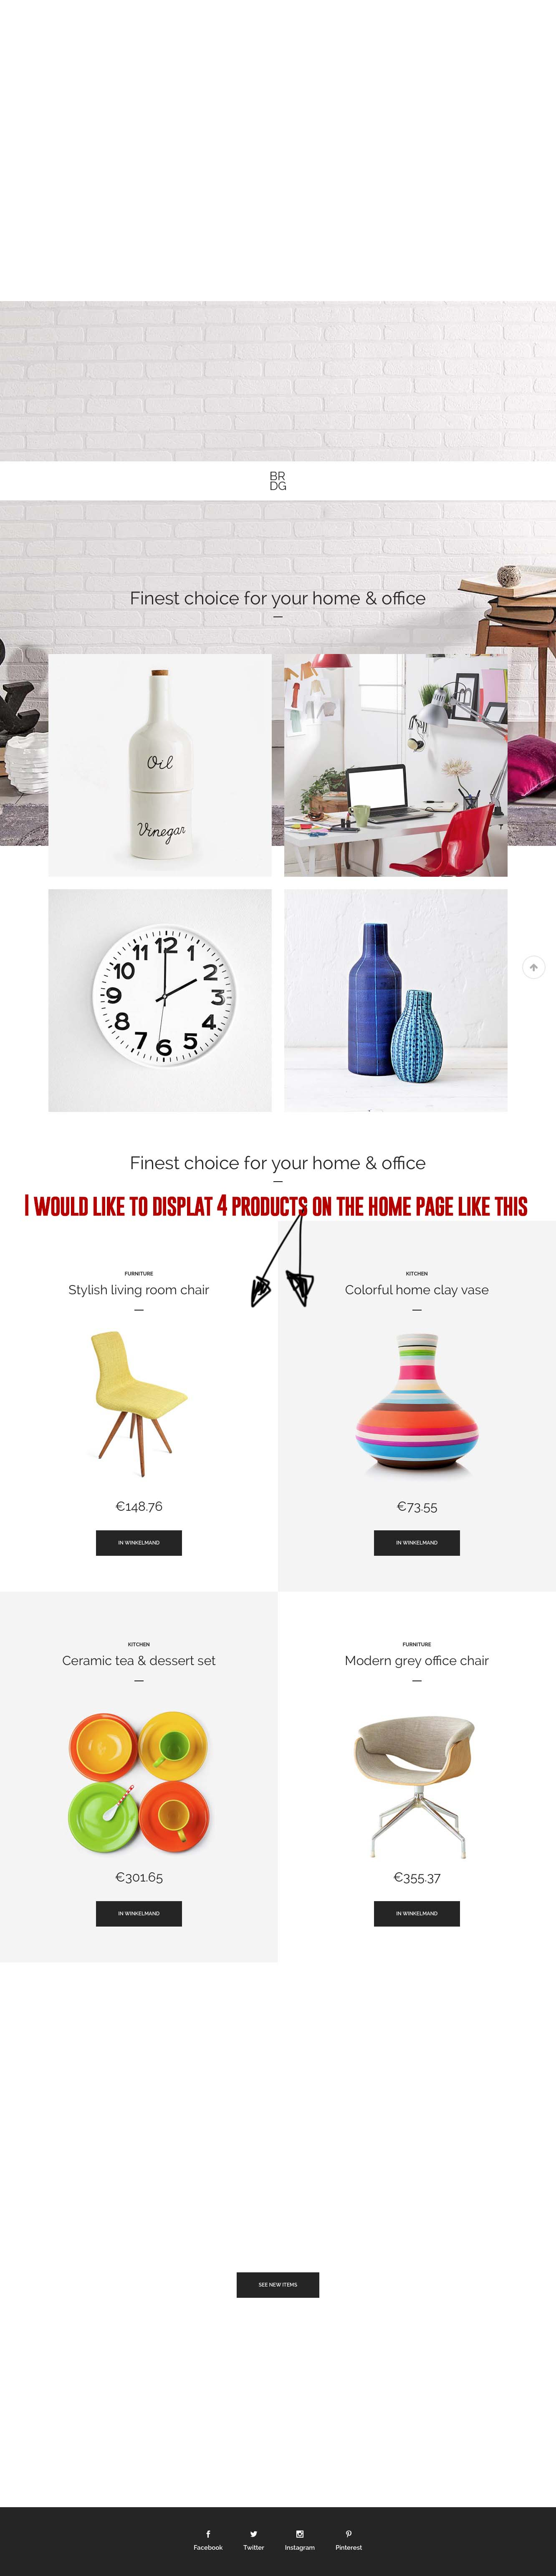 4 products on home